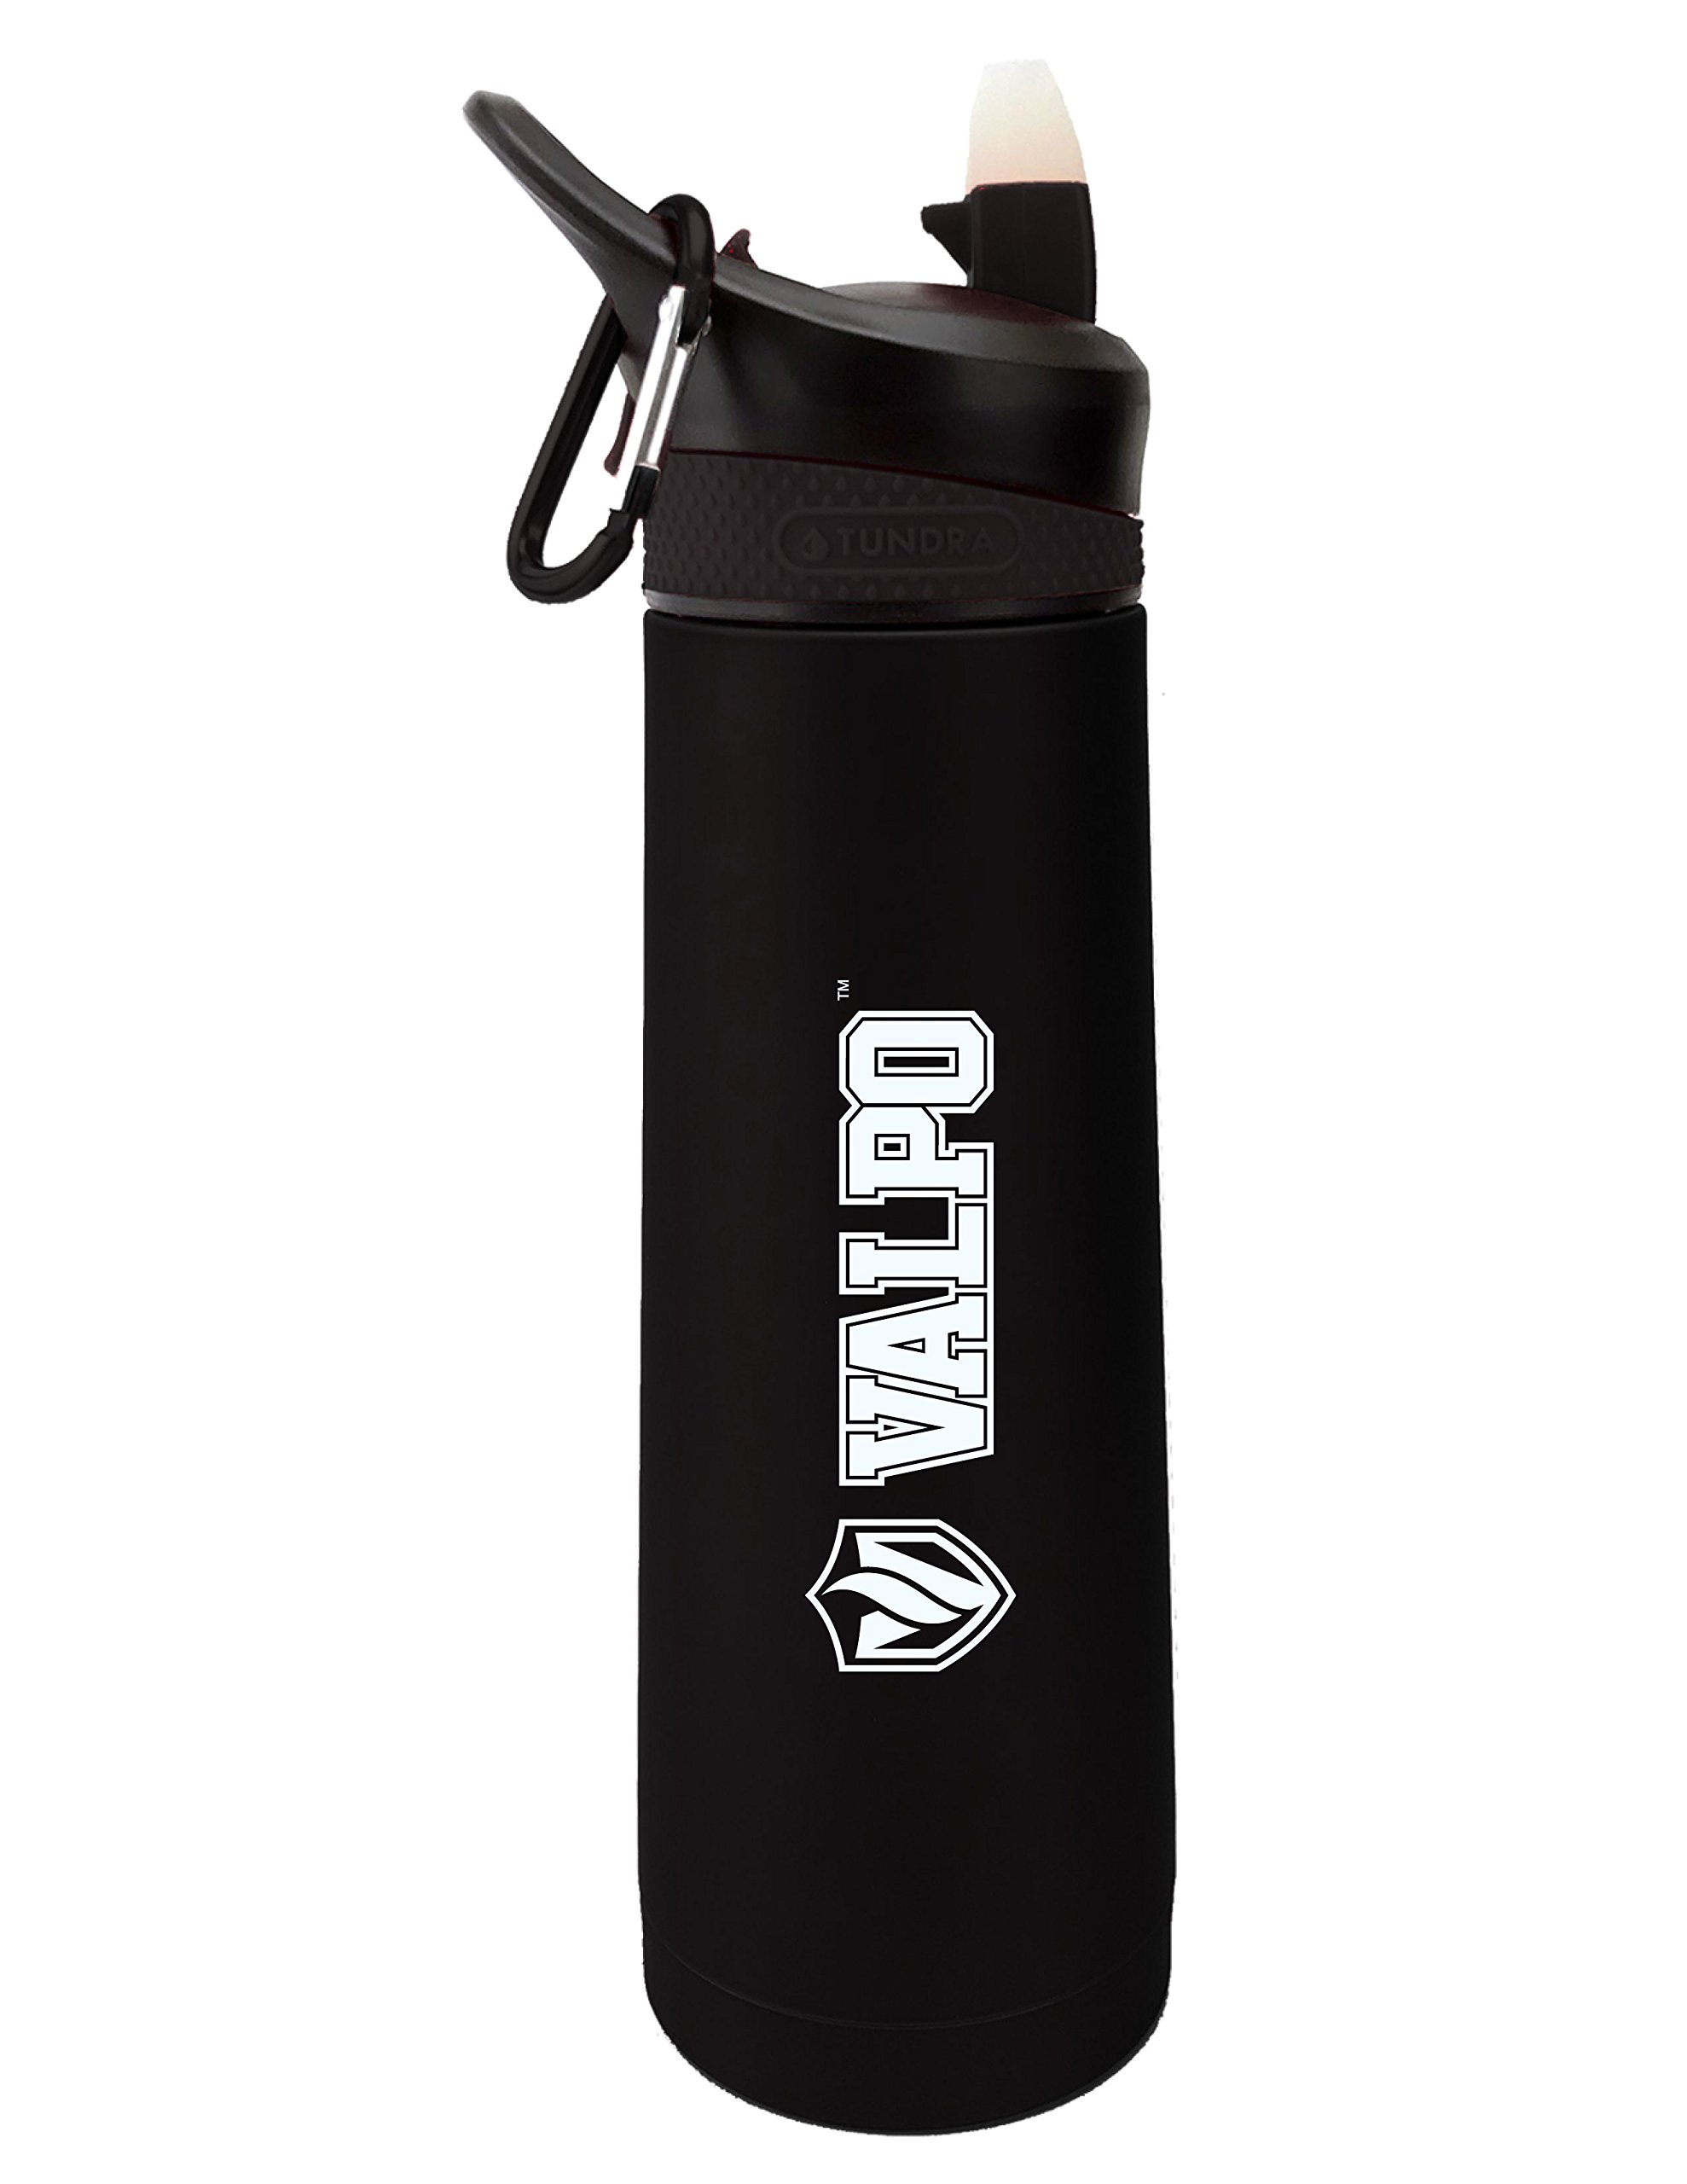 Fanatic Group Valparaiso University Dual Walled Stainless Steel Sports Bottle, Design 1 - Black